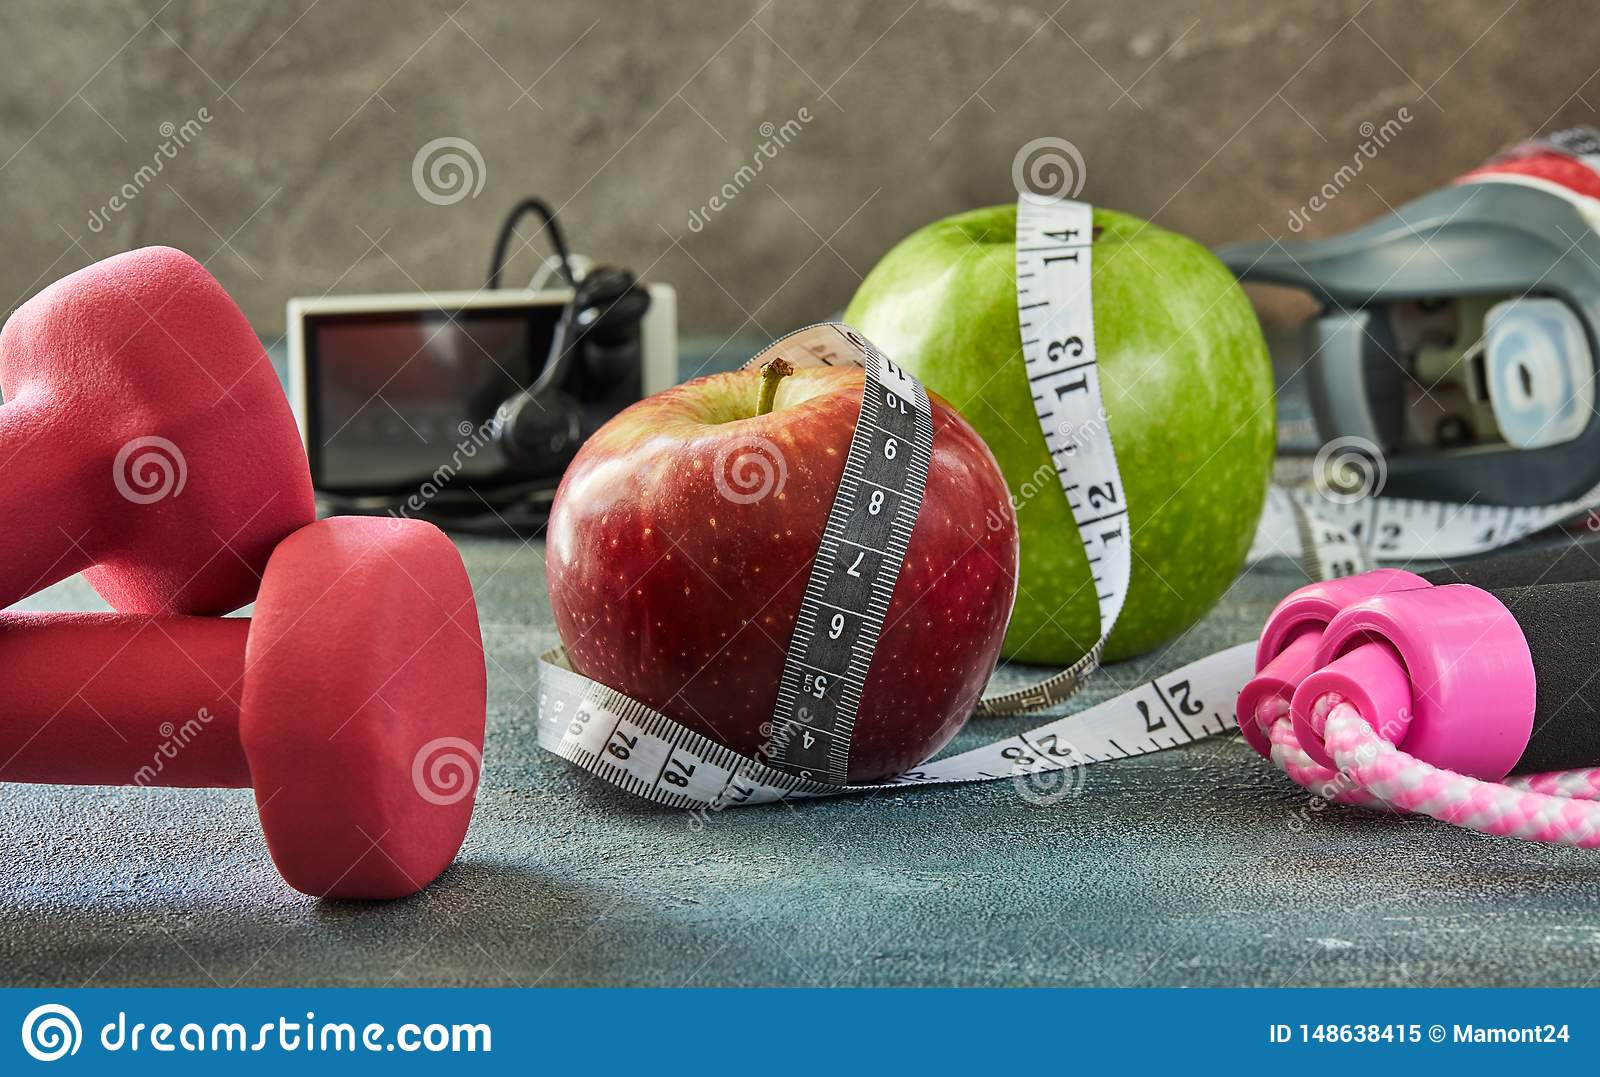 Attributes of a healthy lifestyle